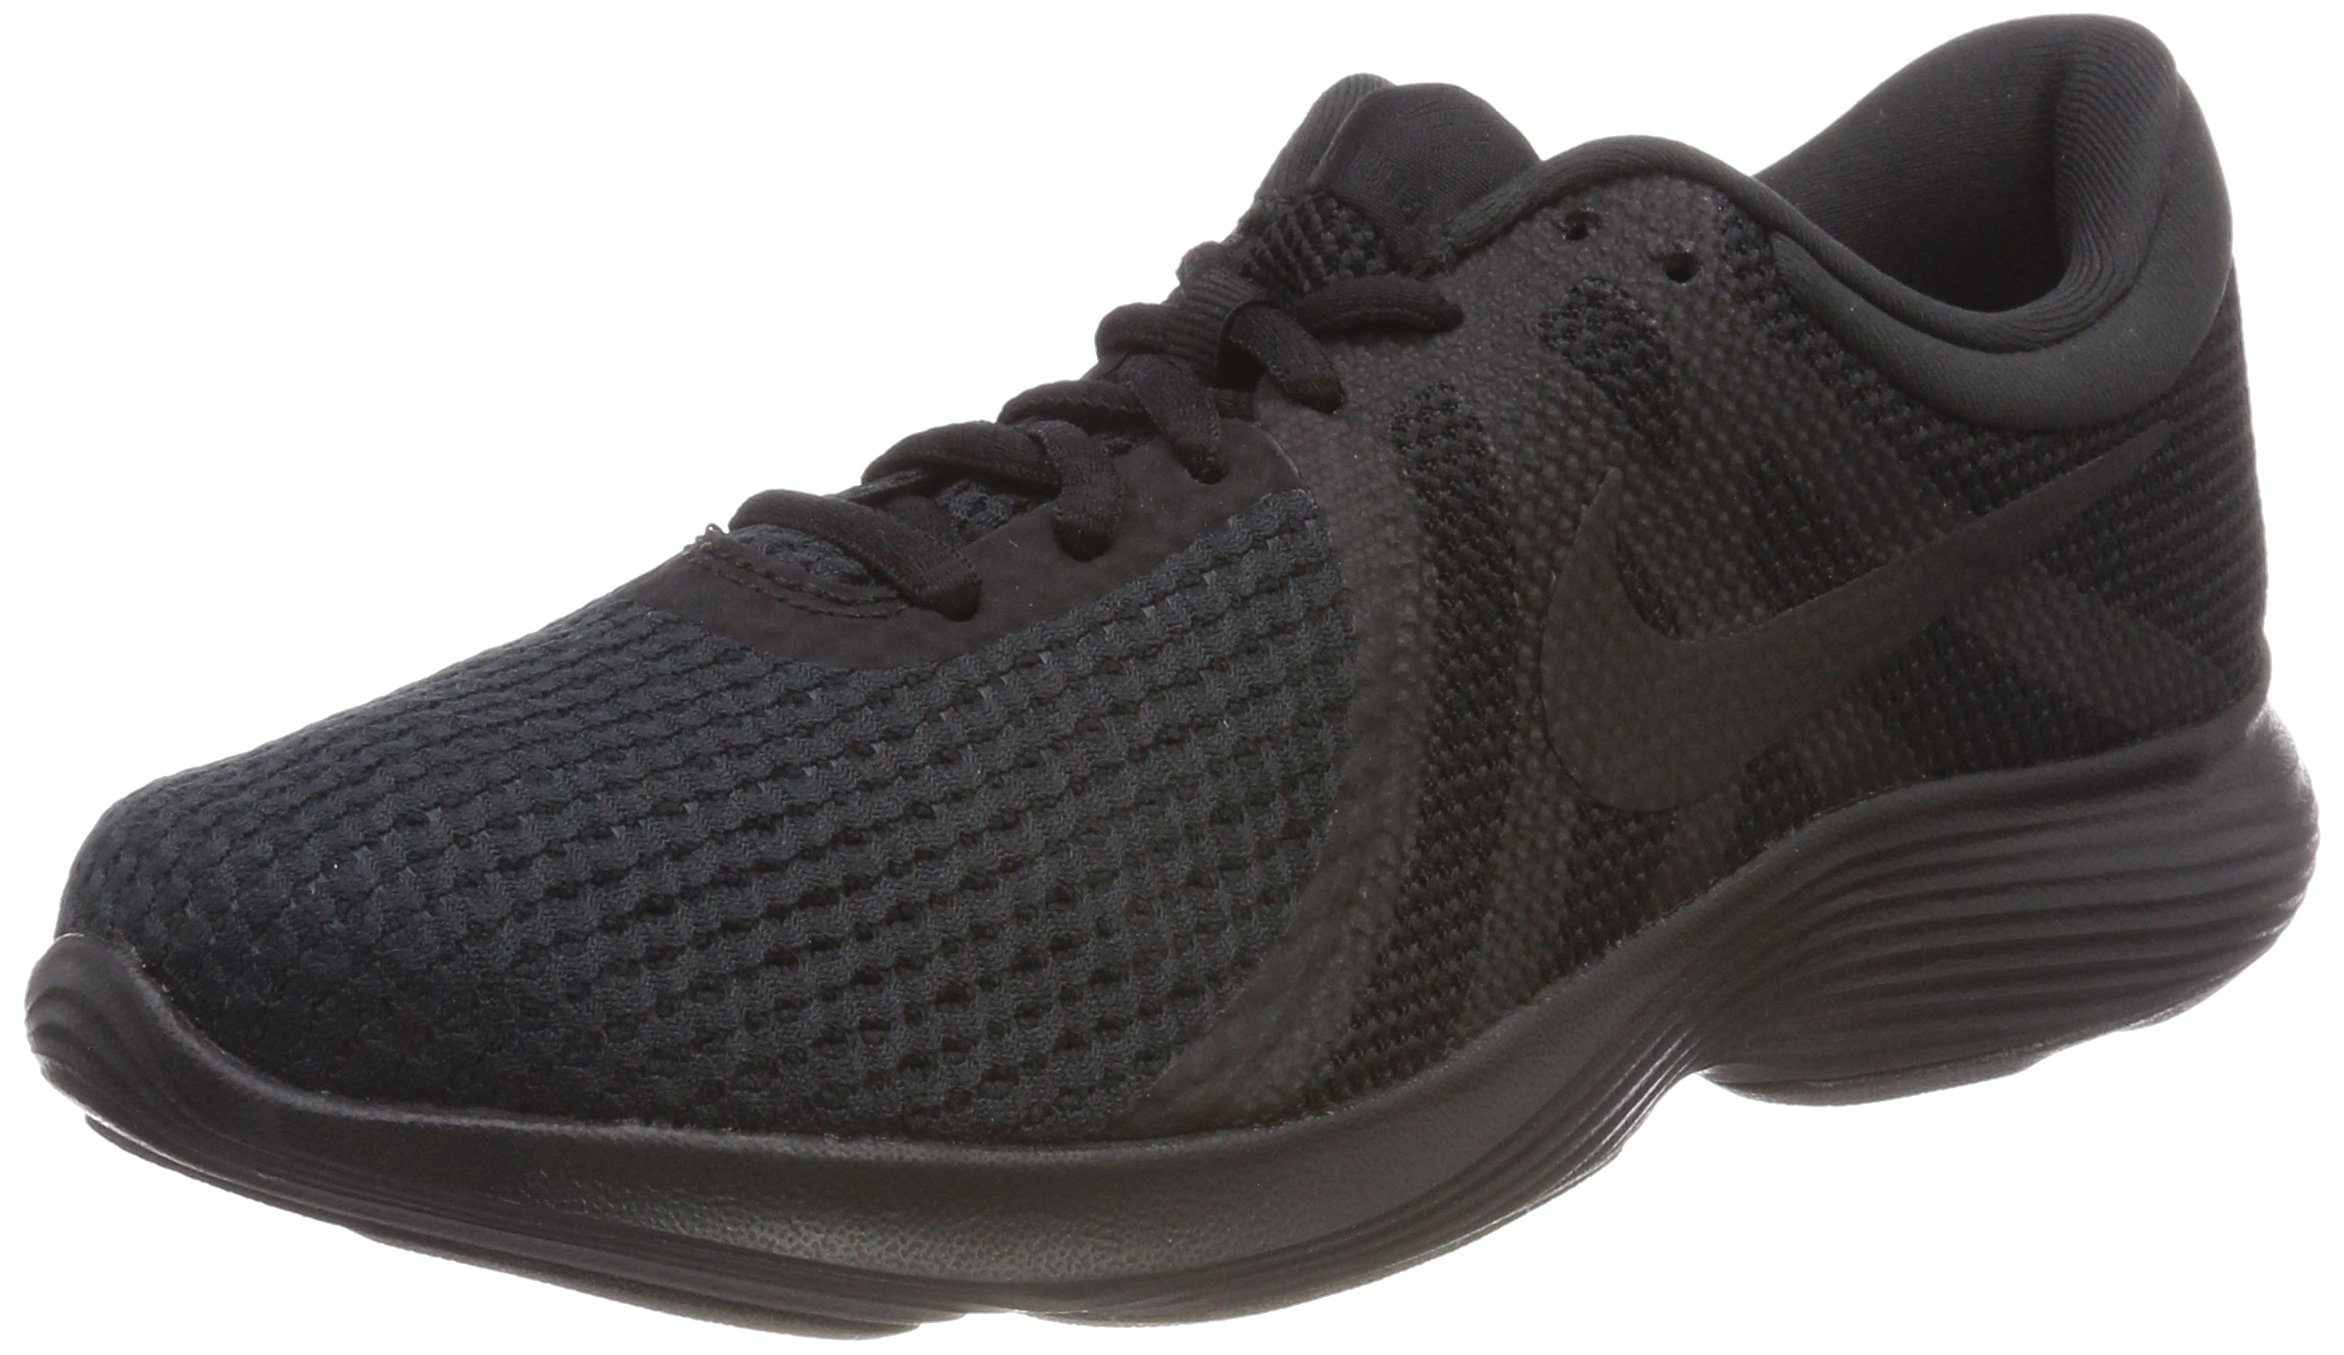 Nike Womens Revolution 4 EU Running Trainers Aj3491 Sneakers Shoes (UK 2.5 US 5 EU 35.5, Black Black 002)